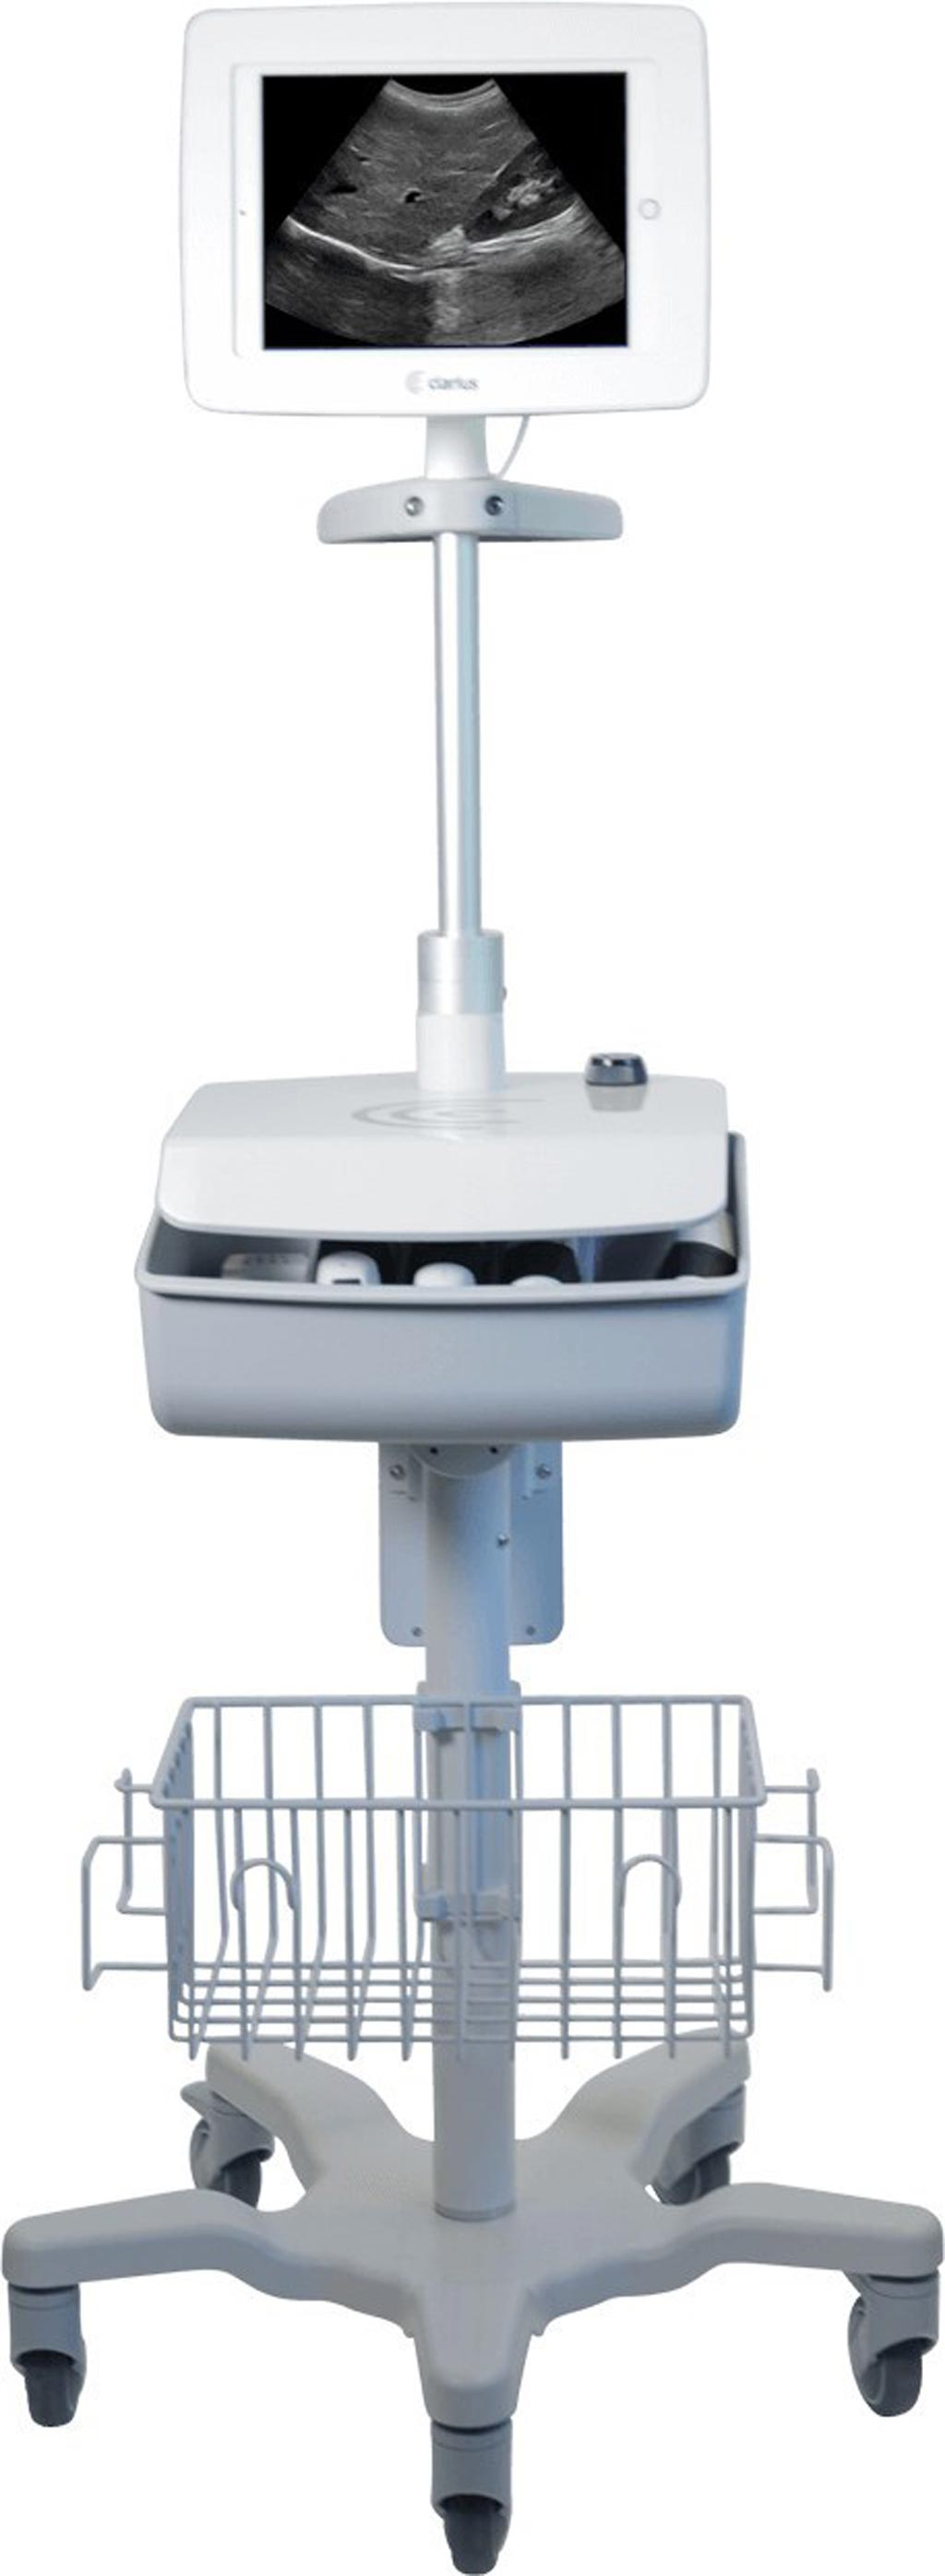 Image: A dedicated ultrasound cart holds multiple wireless scanners (Photo courtesy of Clarius).